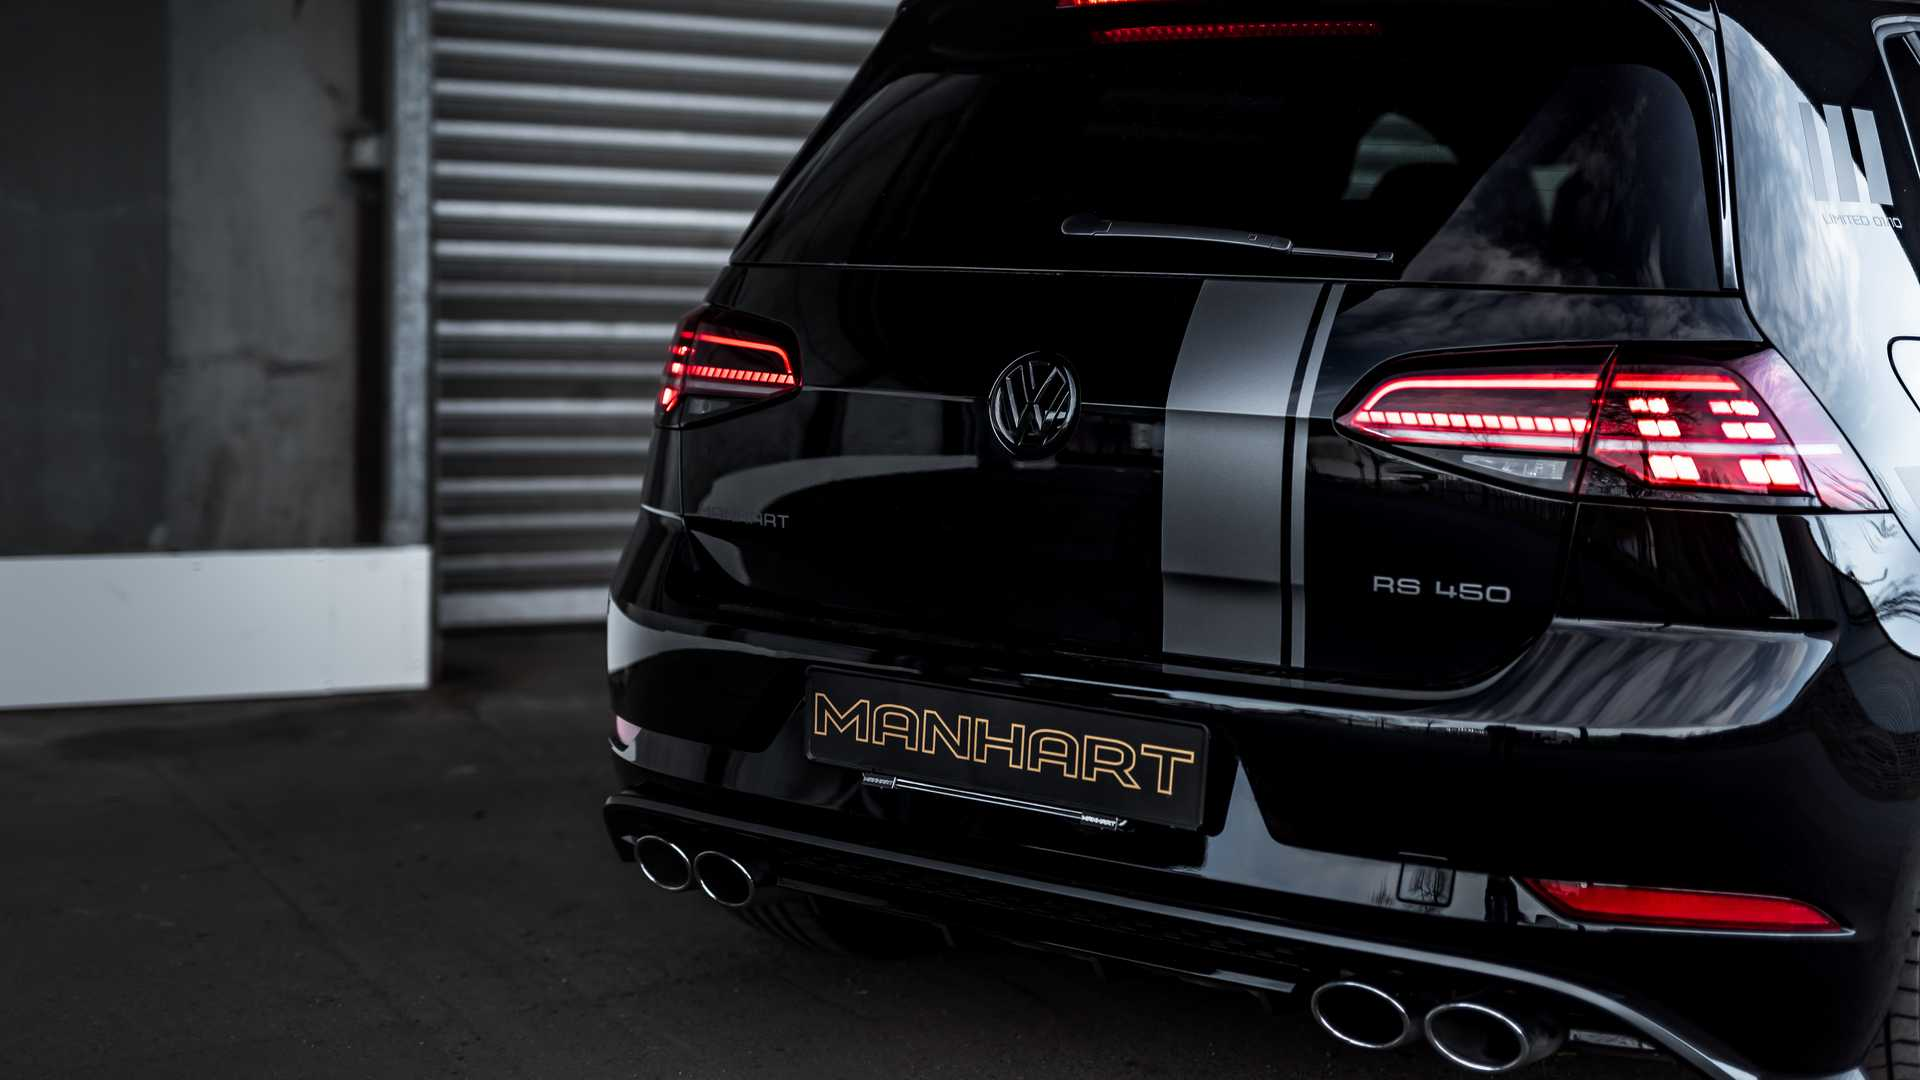 manhart-rs450-based-on-the-vw-golf-r (8)